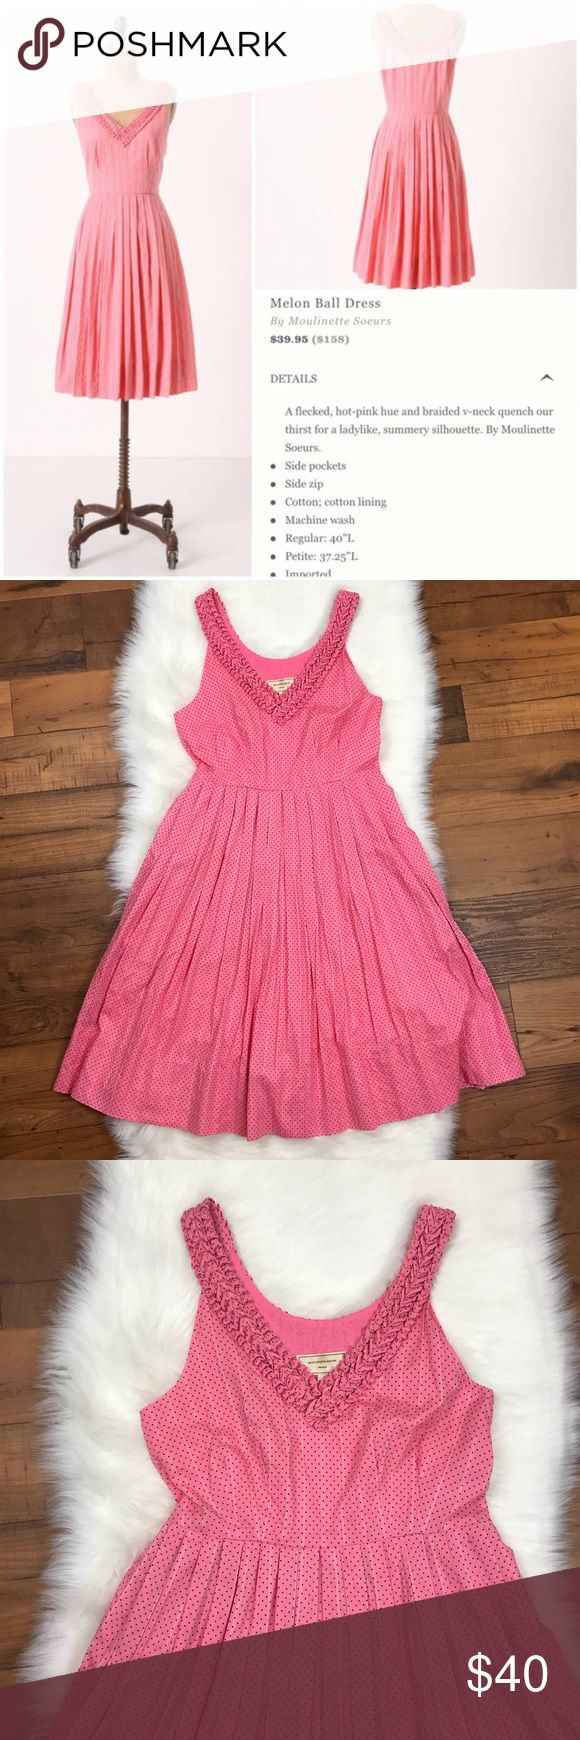 """Anthropologie Moulinette Soeurs Melon Ball Dress Anthropologie Moulinette Soeurs Pink Polka Dot Melon Ball Dress. Sleeveless. Pinup vibes. Regularly $158. Pleated Skirt. Size 0. Armpit to armpit is about 15.5"""". The length of the dress is about 37"""". Anthropologie Dresses"""